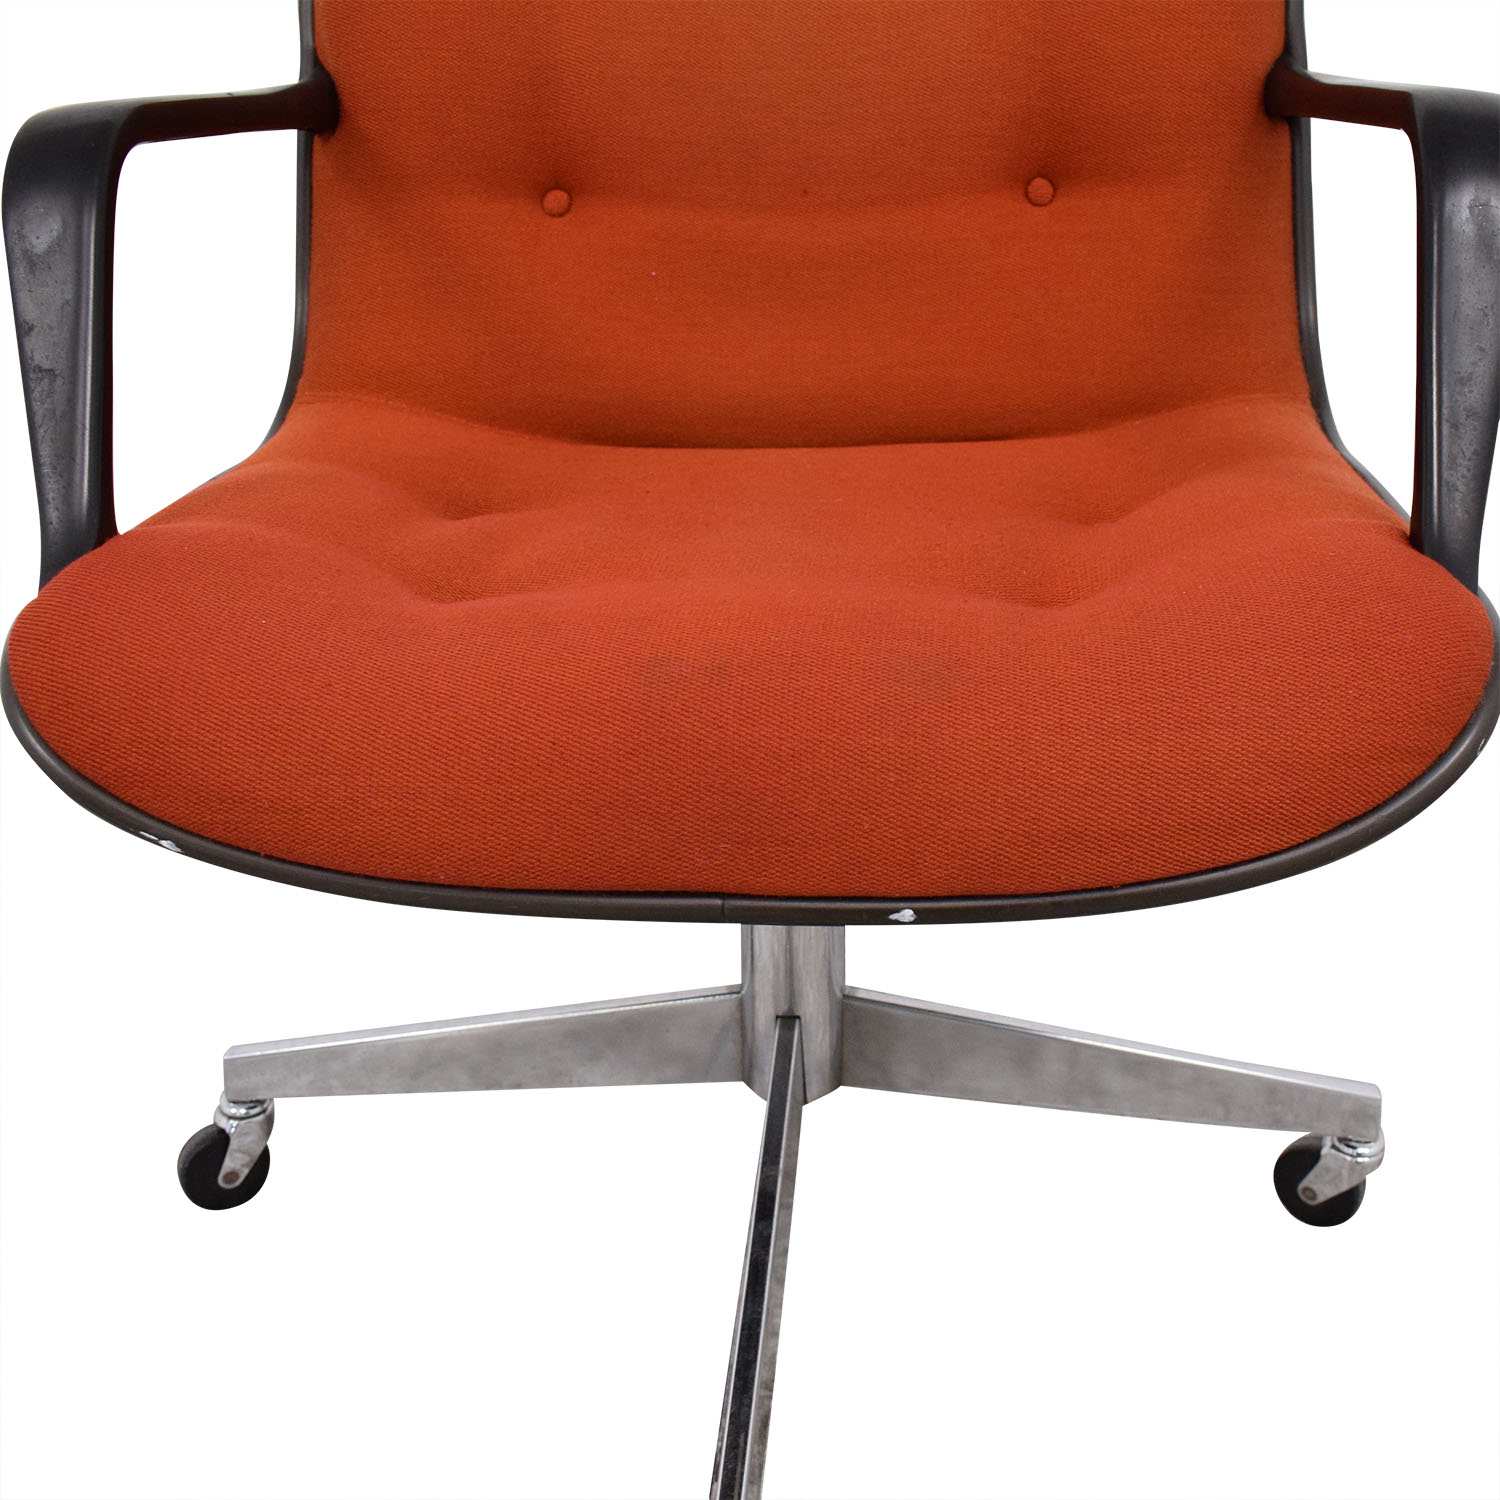 buy Steelcase Mid Century Modern Office Chair Steelcase Chairs